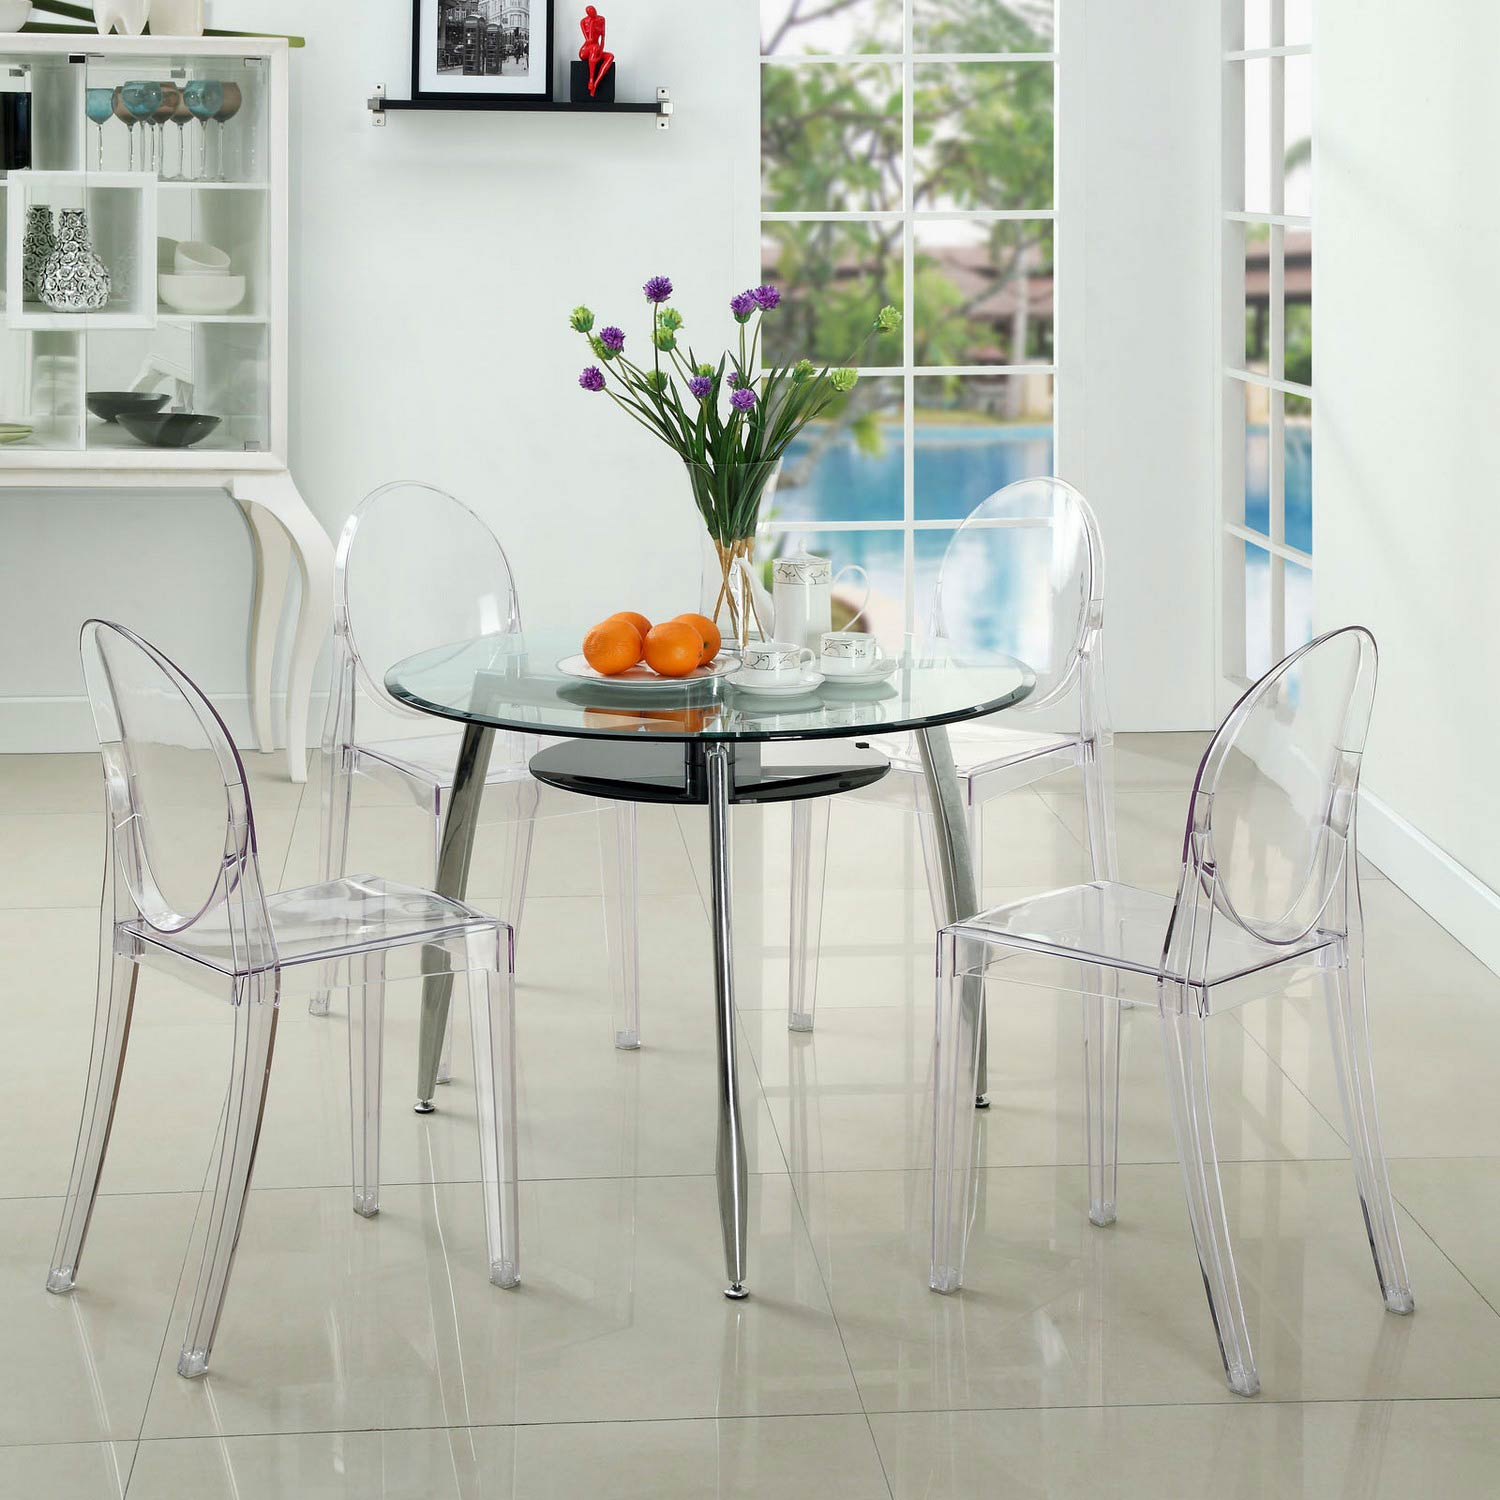 Modway Casper Dining Chairs Set of 4 - Clear